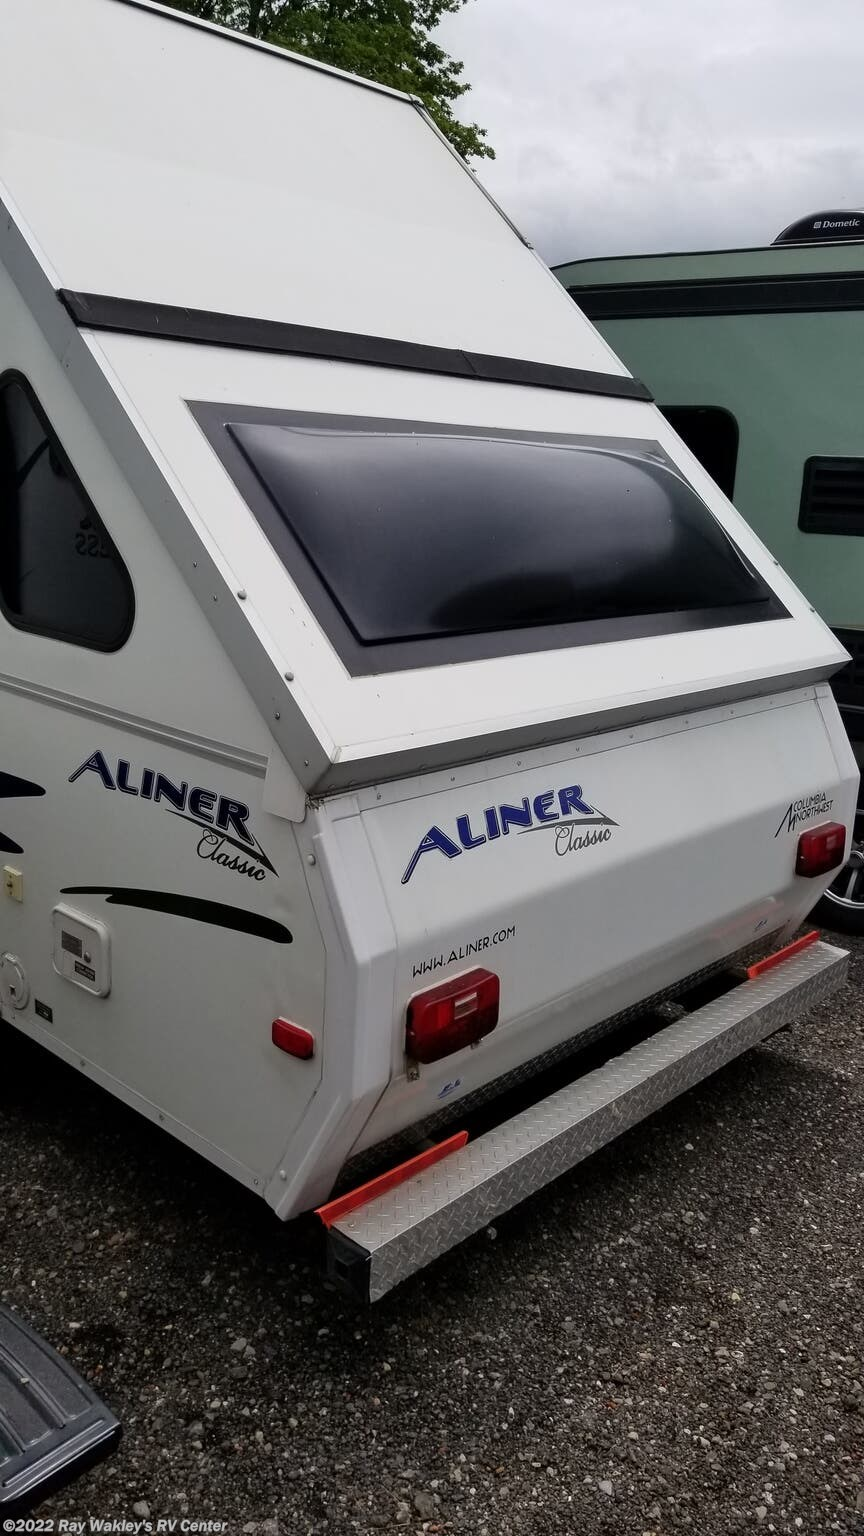 39710B - 2009 Aliner Classic for sale in North East PA